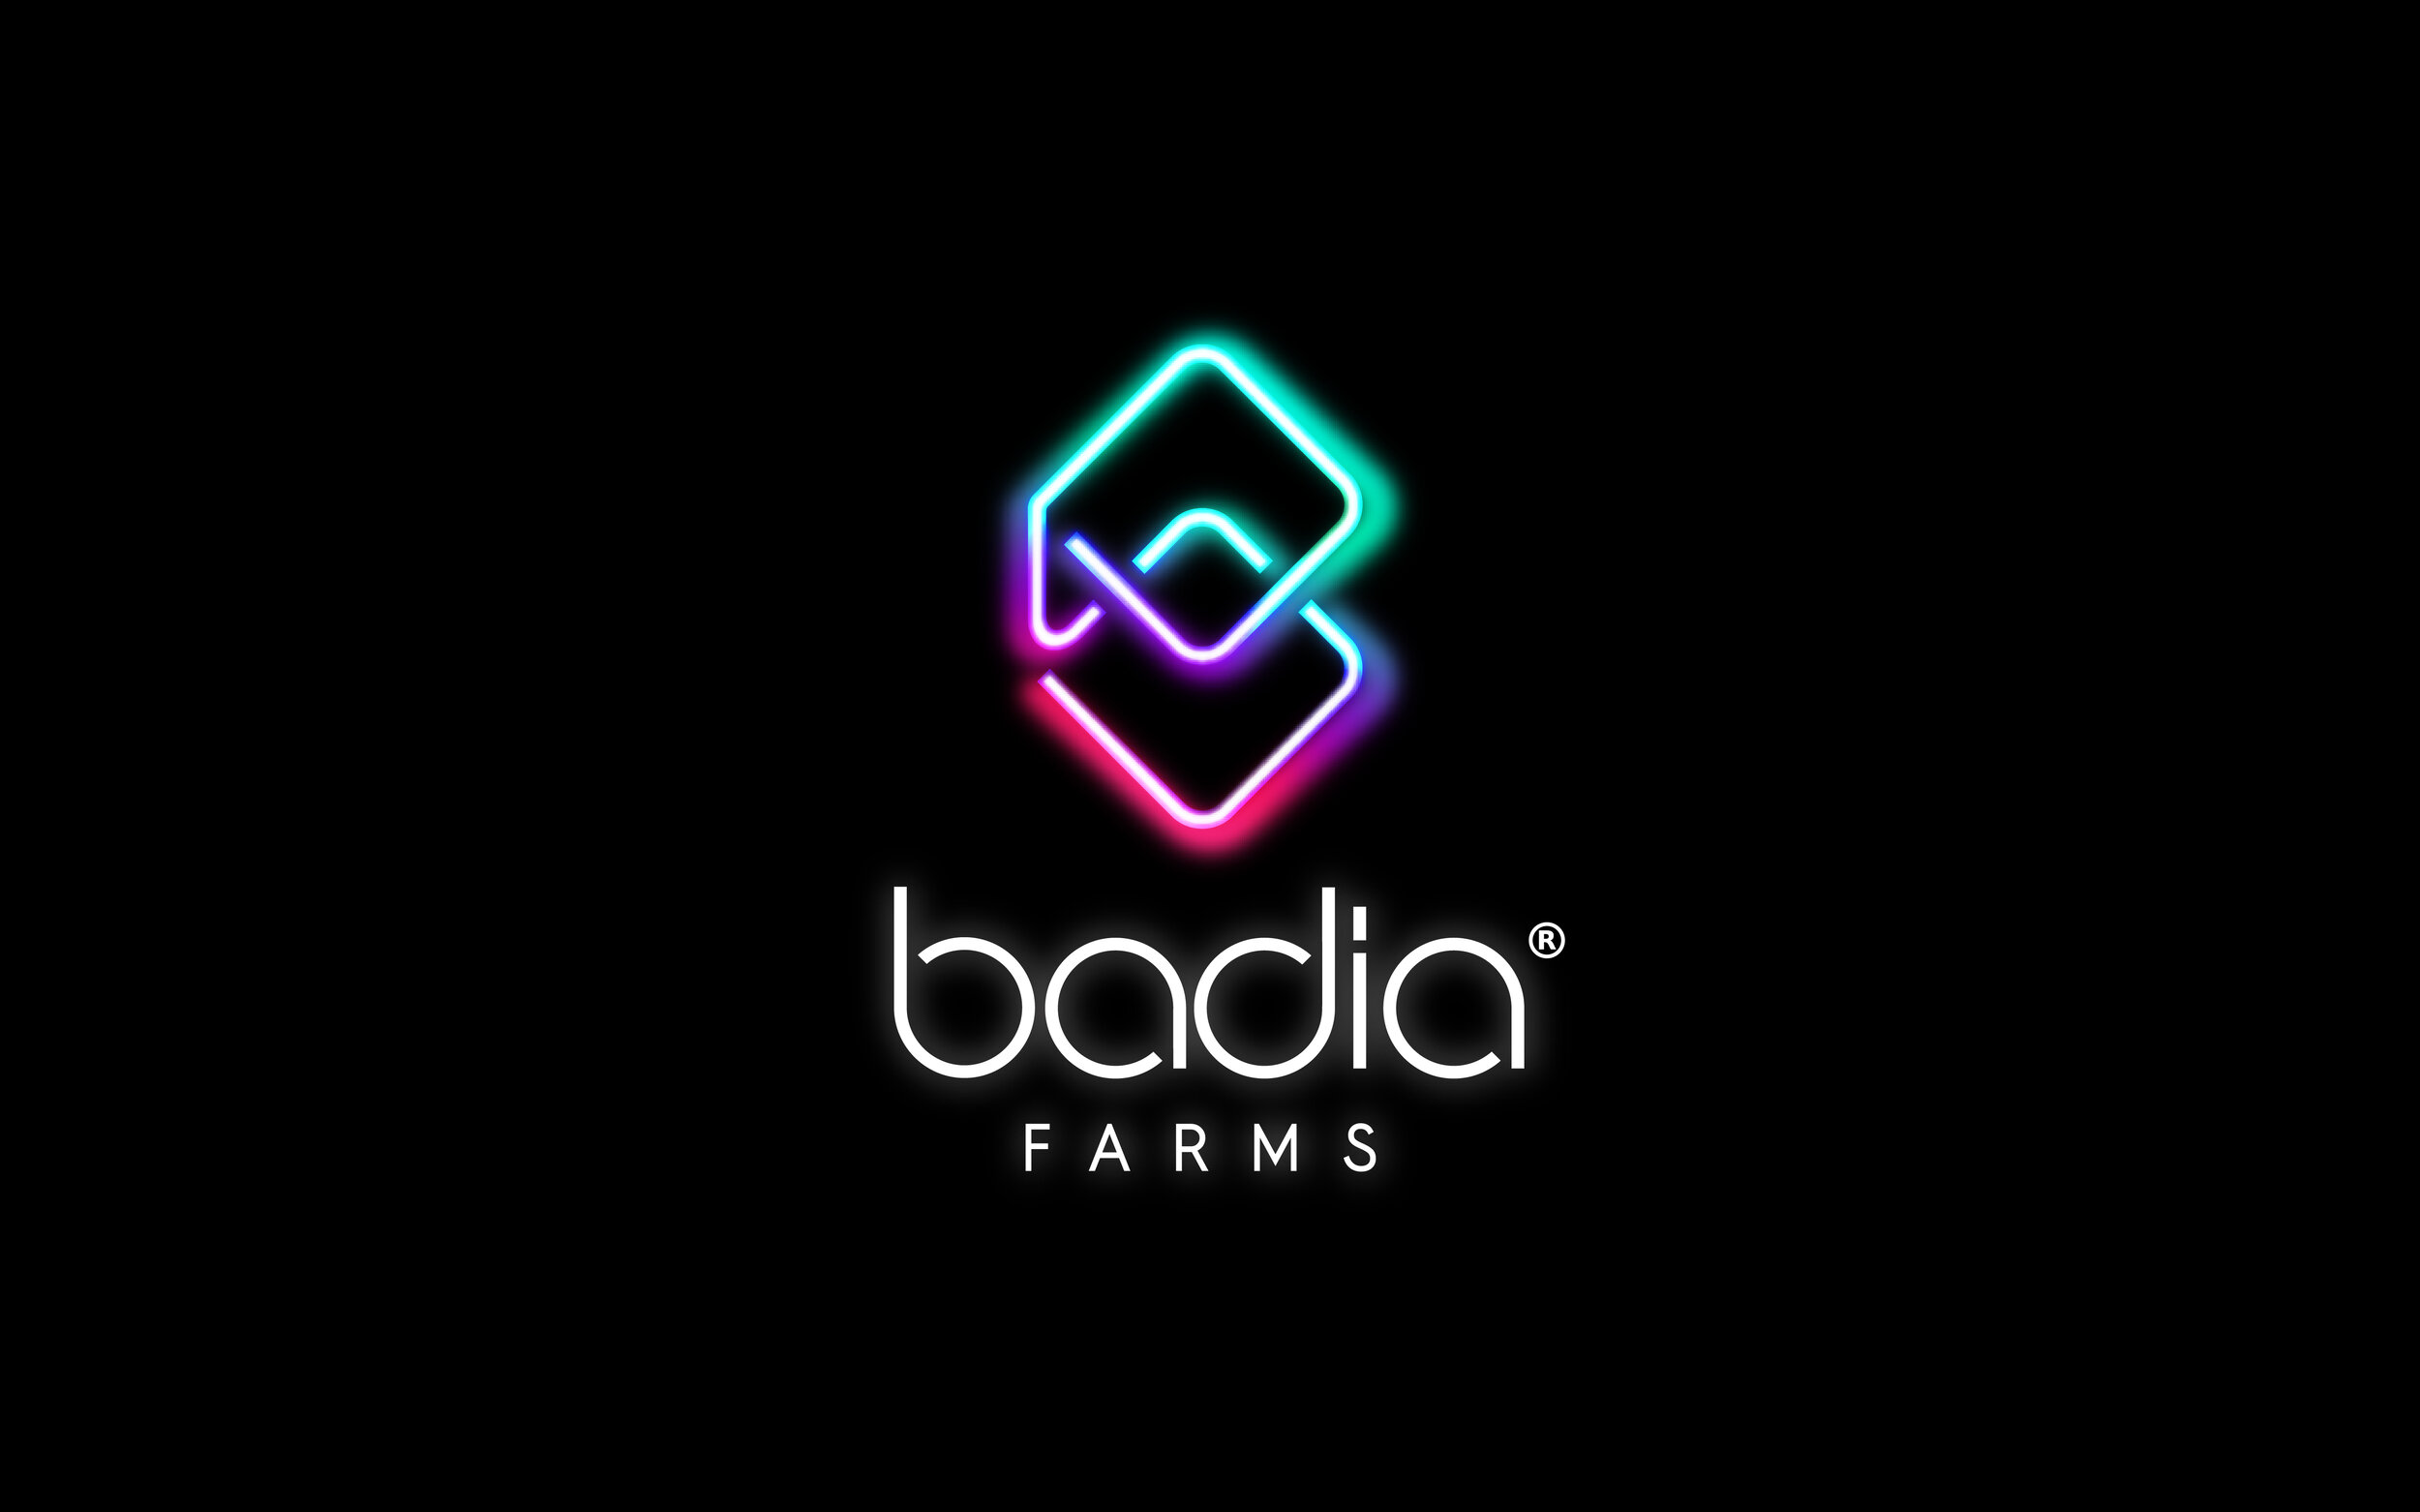 BADIA+FARMS